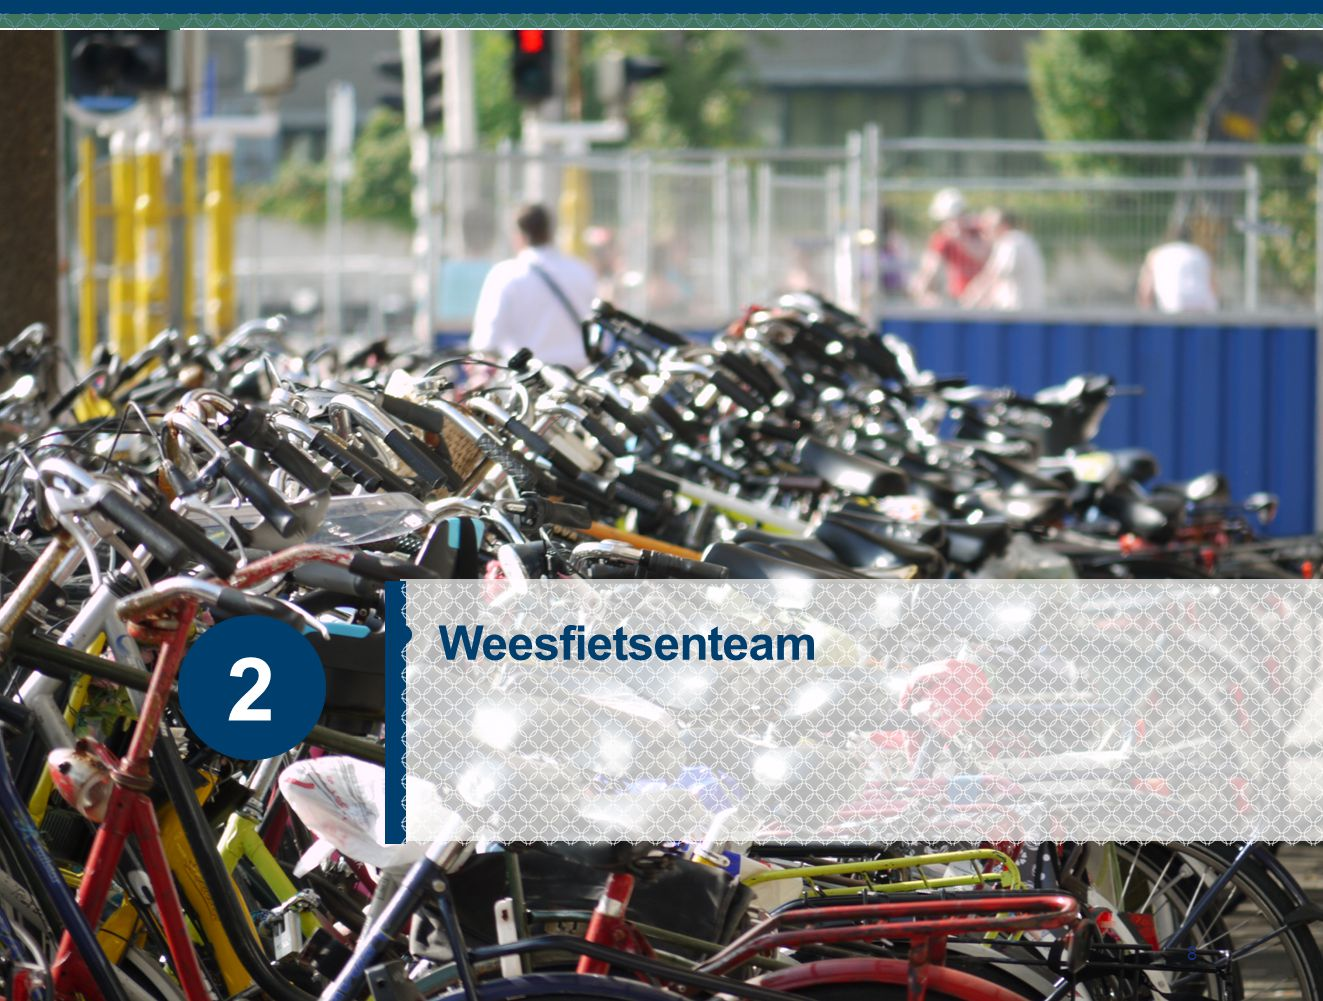 Weesfietsenteam 2